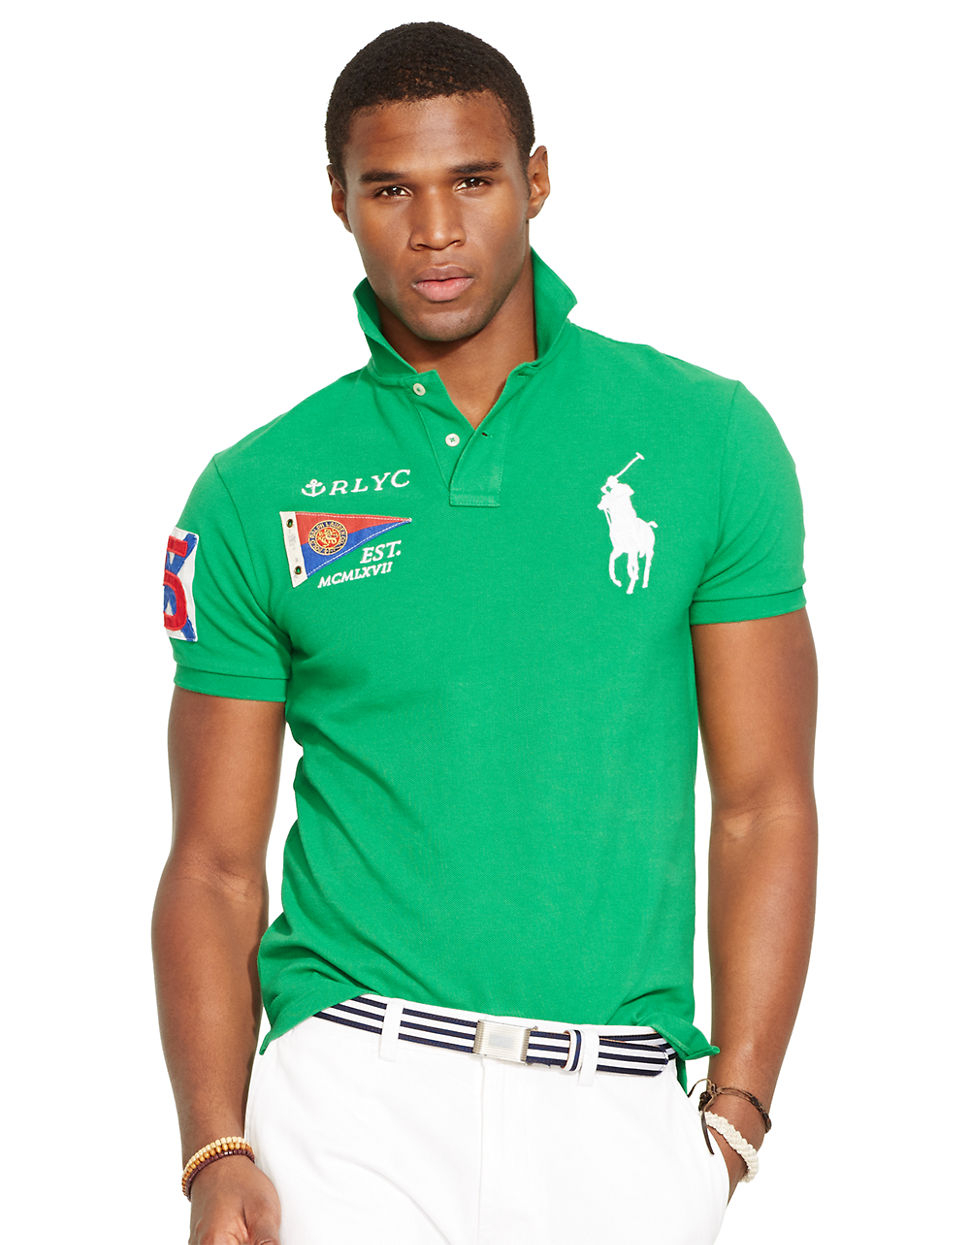 Polo ralph lauren custom fit yacht club mesh polo shirt in for Ralph lauren custom fit mesh polo shirt